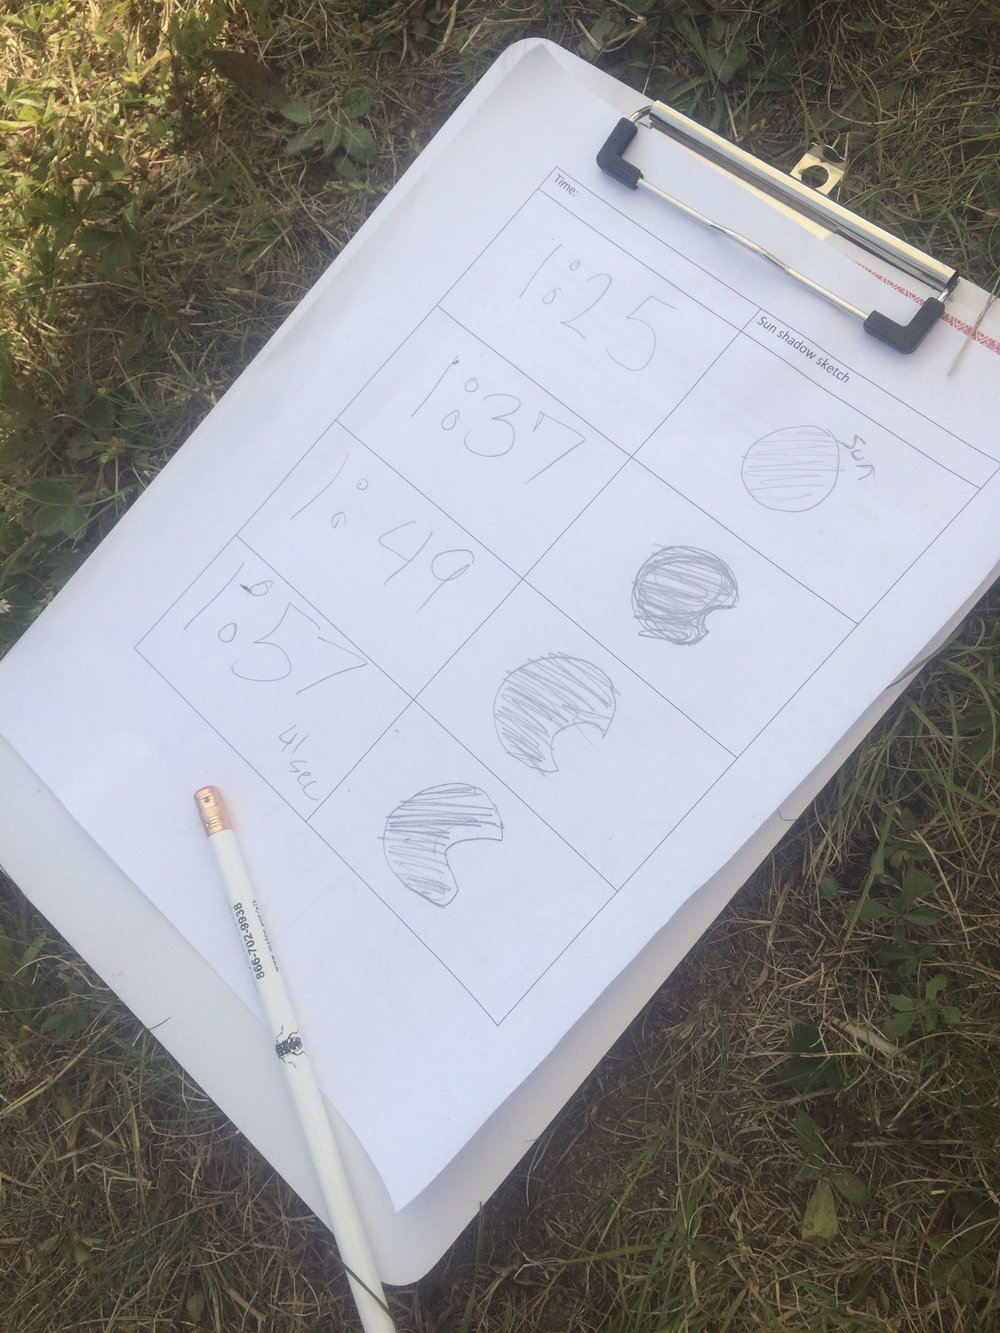 Drawing their eclipse observations